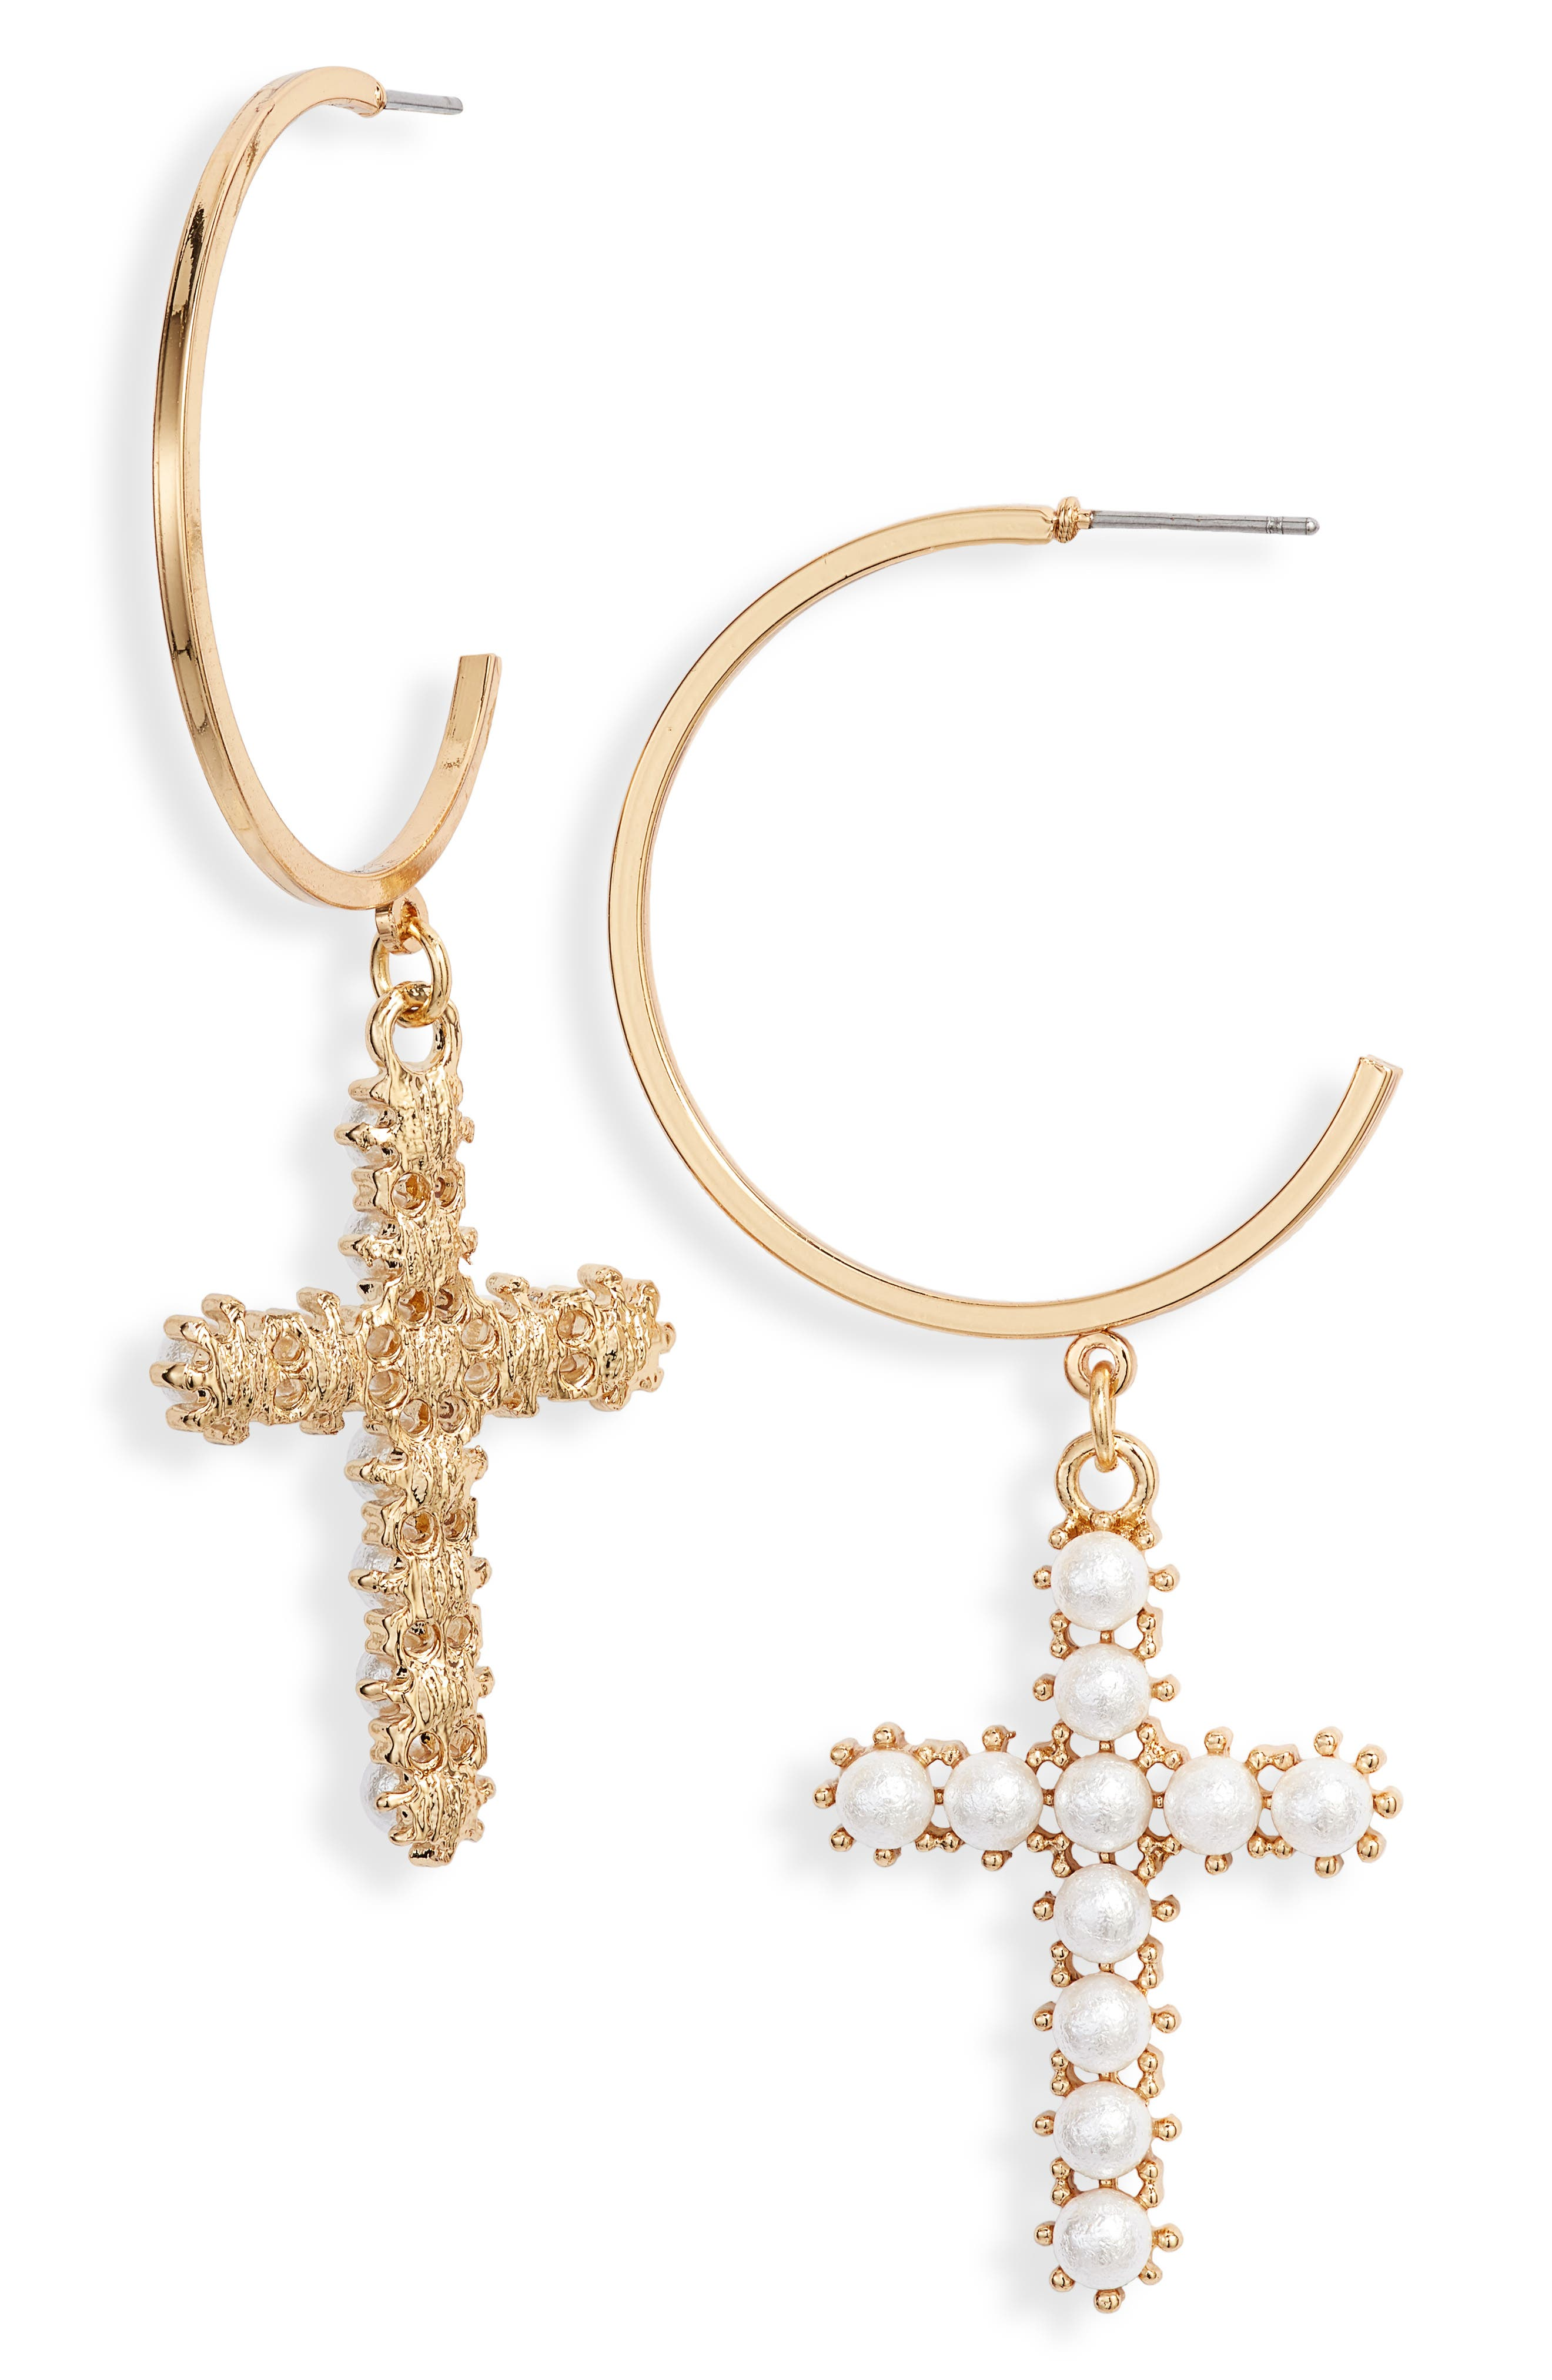 Fashion-forward symbols of faith, these earrings feature imitation-pearl cross pendants suspended from open hoops, all cast in gleaming 18-karat-gold plate for an elegant and ecclesiastical style. Style Name: Ettika Imitation Pearl Cross & Hoop Earrings. Style Number: 5668018. Available in stores.